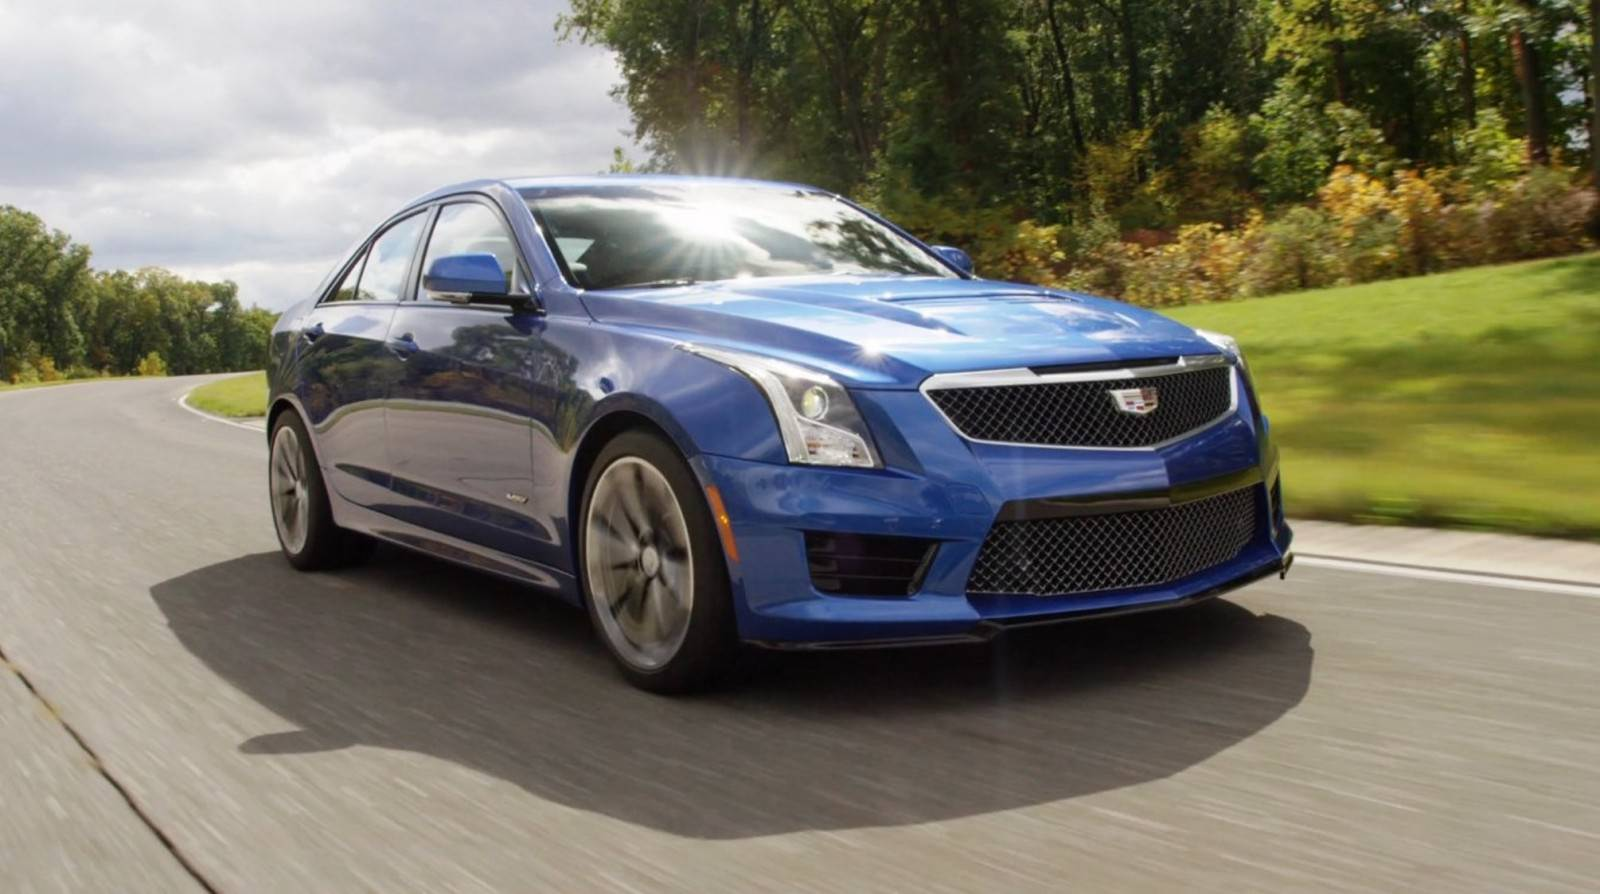 2010 Cadillac ATS V Sedan photo - 3